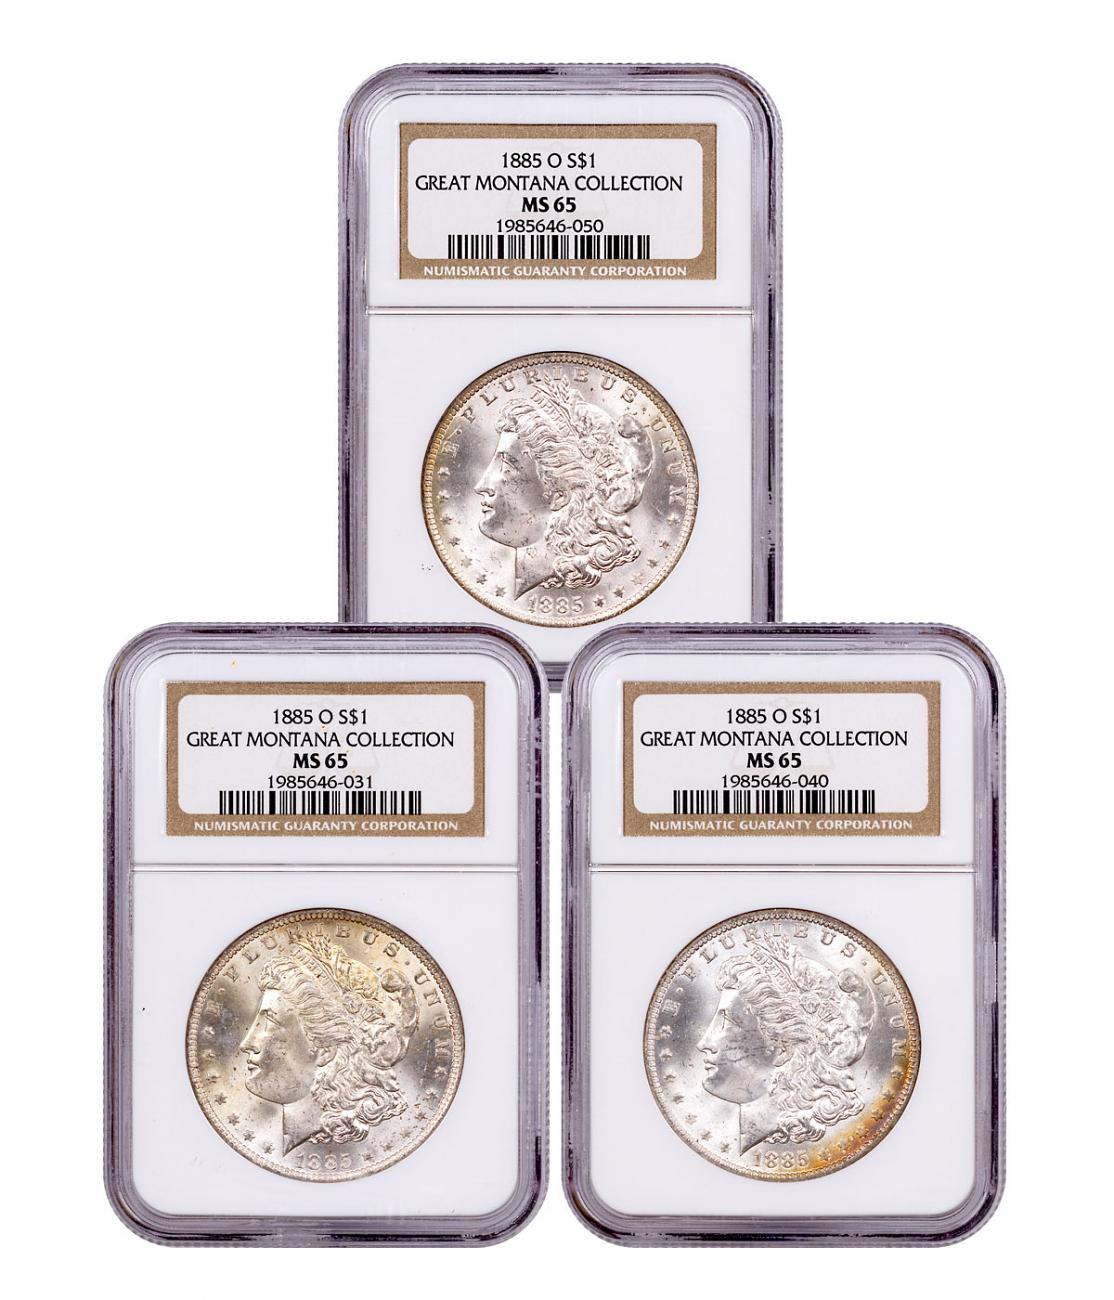 3-Coin Set - 1885-O Morgan Silver Dollar From the Great Montana Collection NGC MS65 Toned CPCR 6050